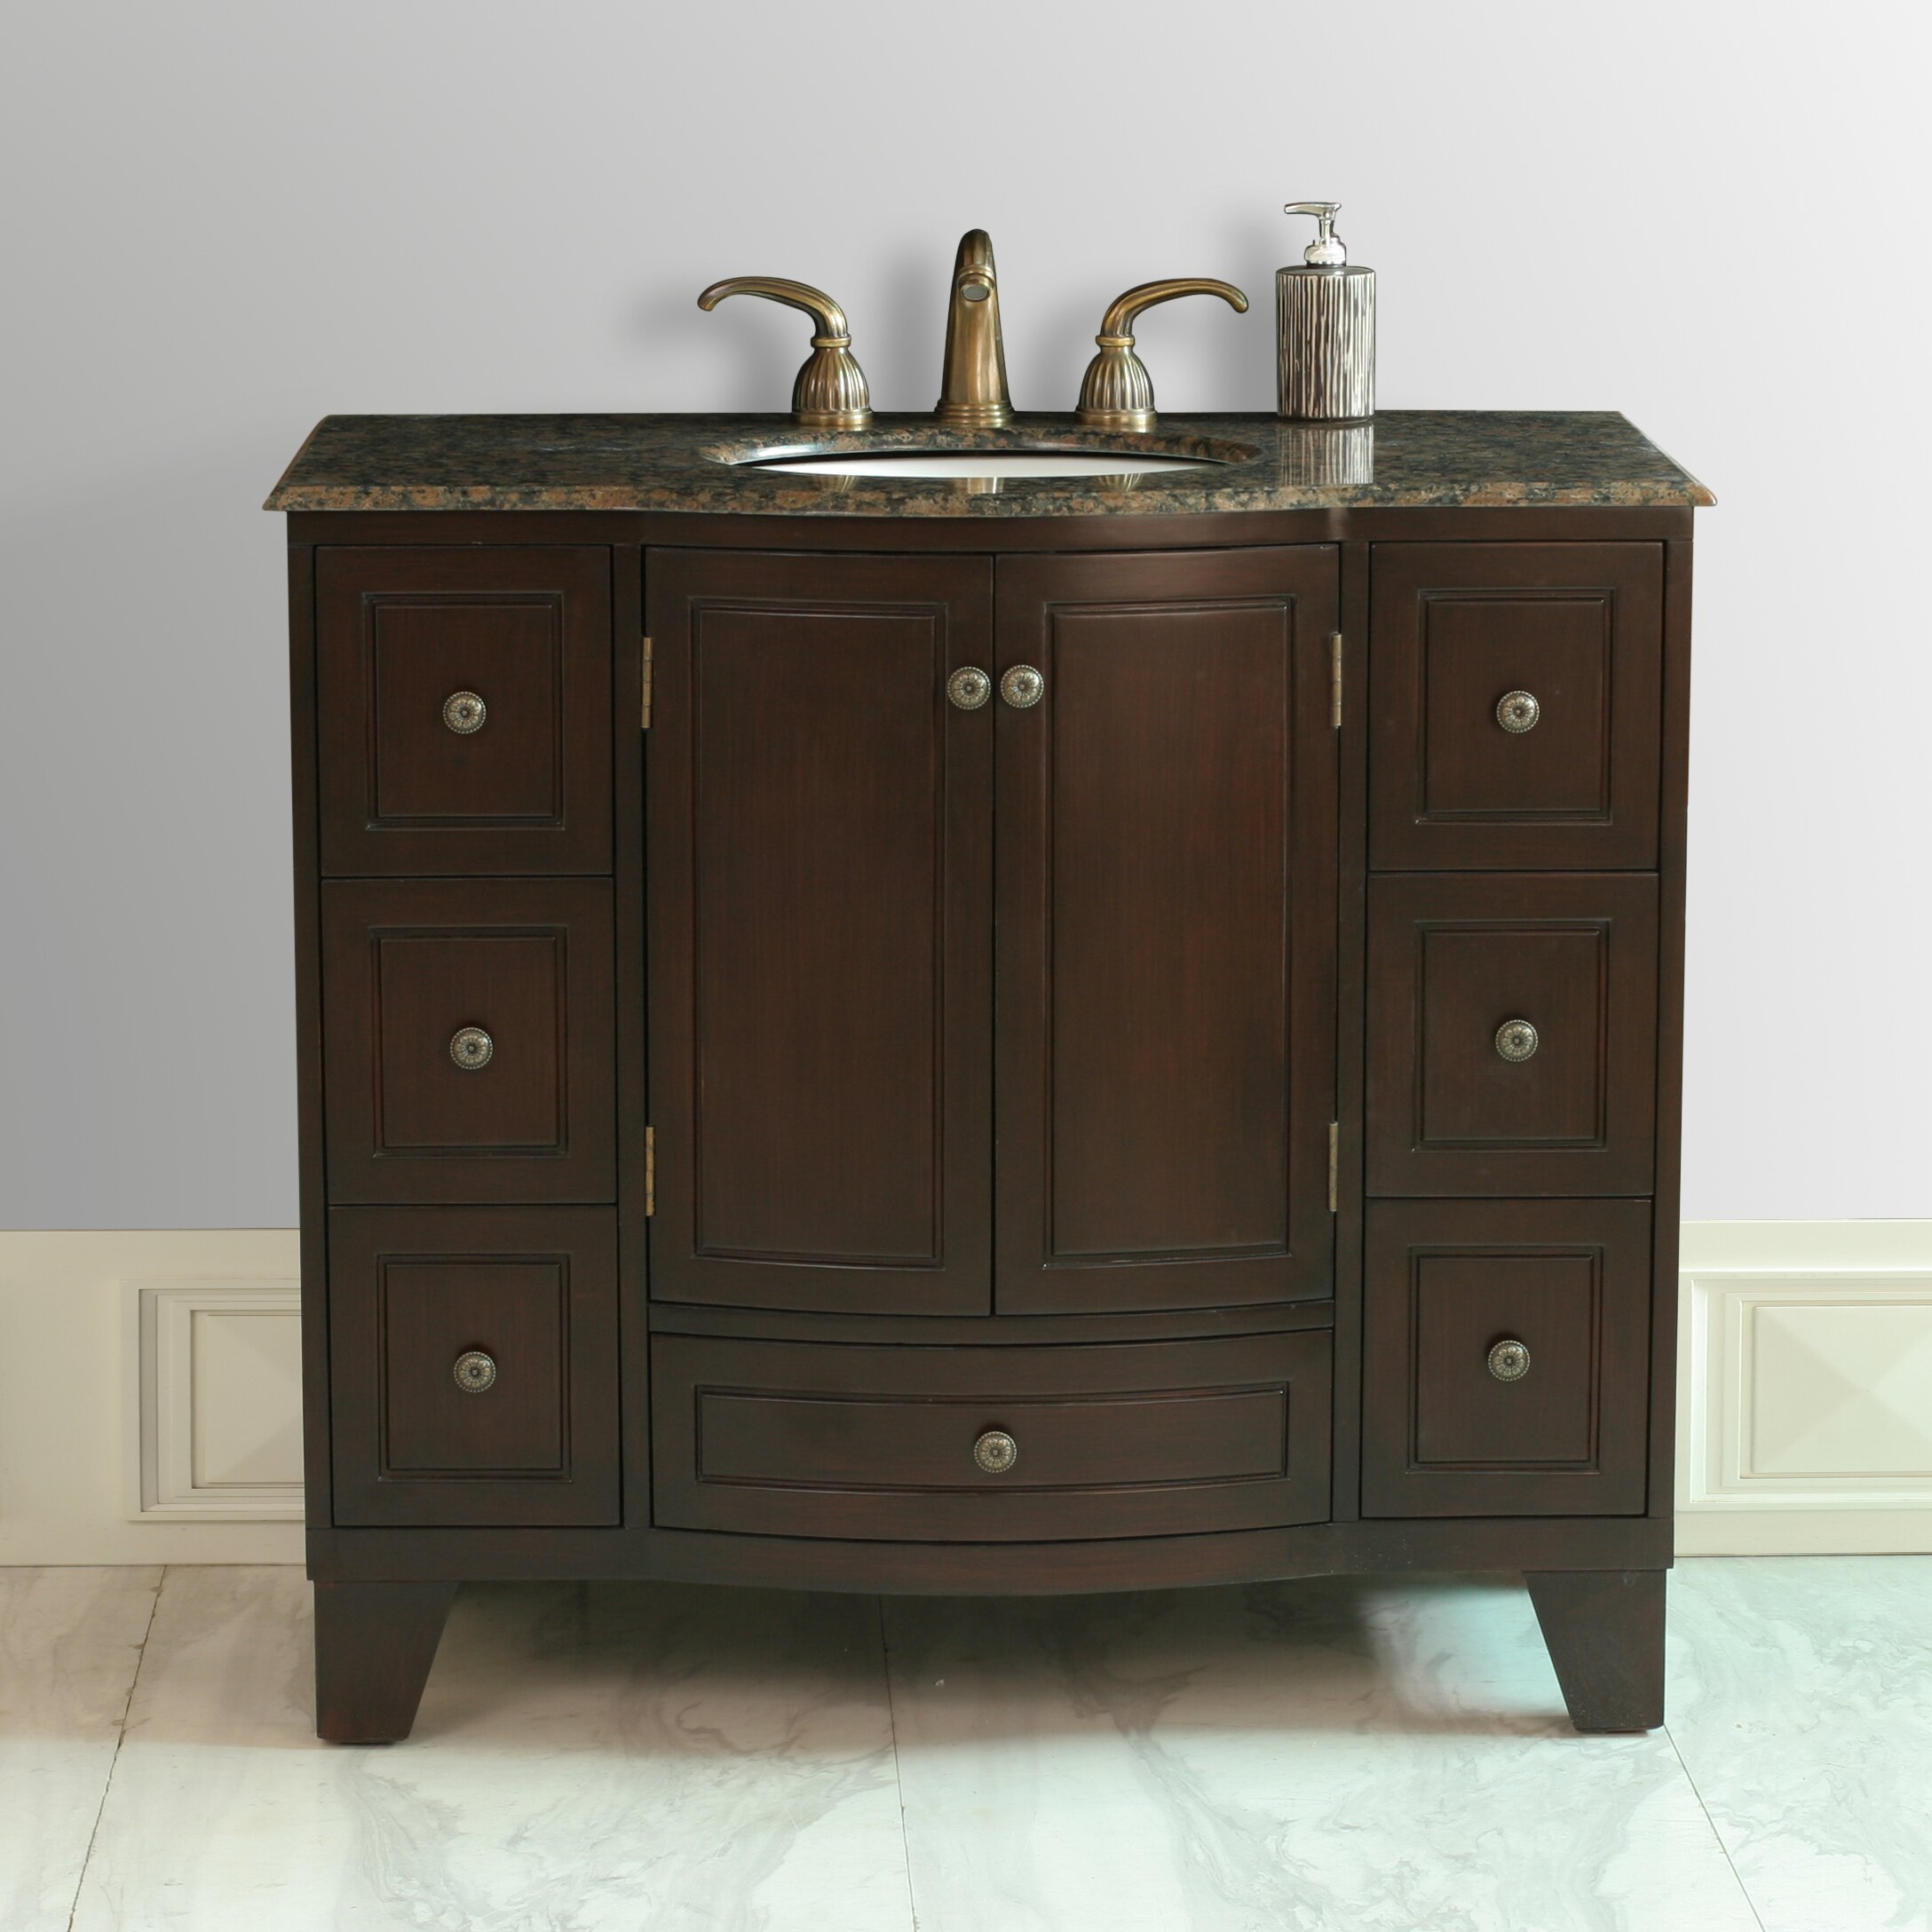 Dcor Design Lindenwood 40 Single Bathroom Vanity Set Reviews Wayfair